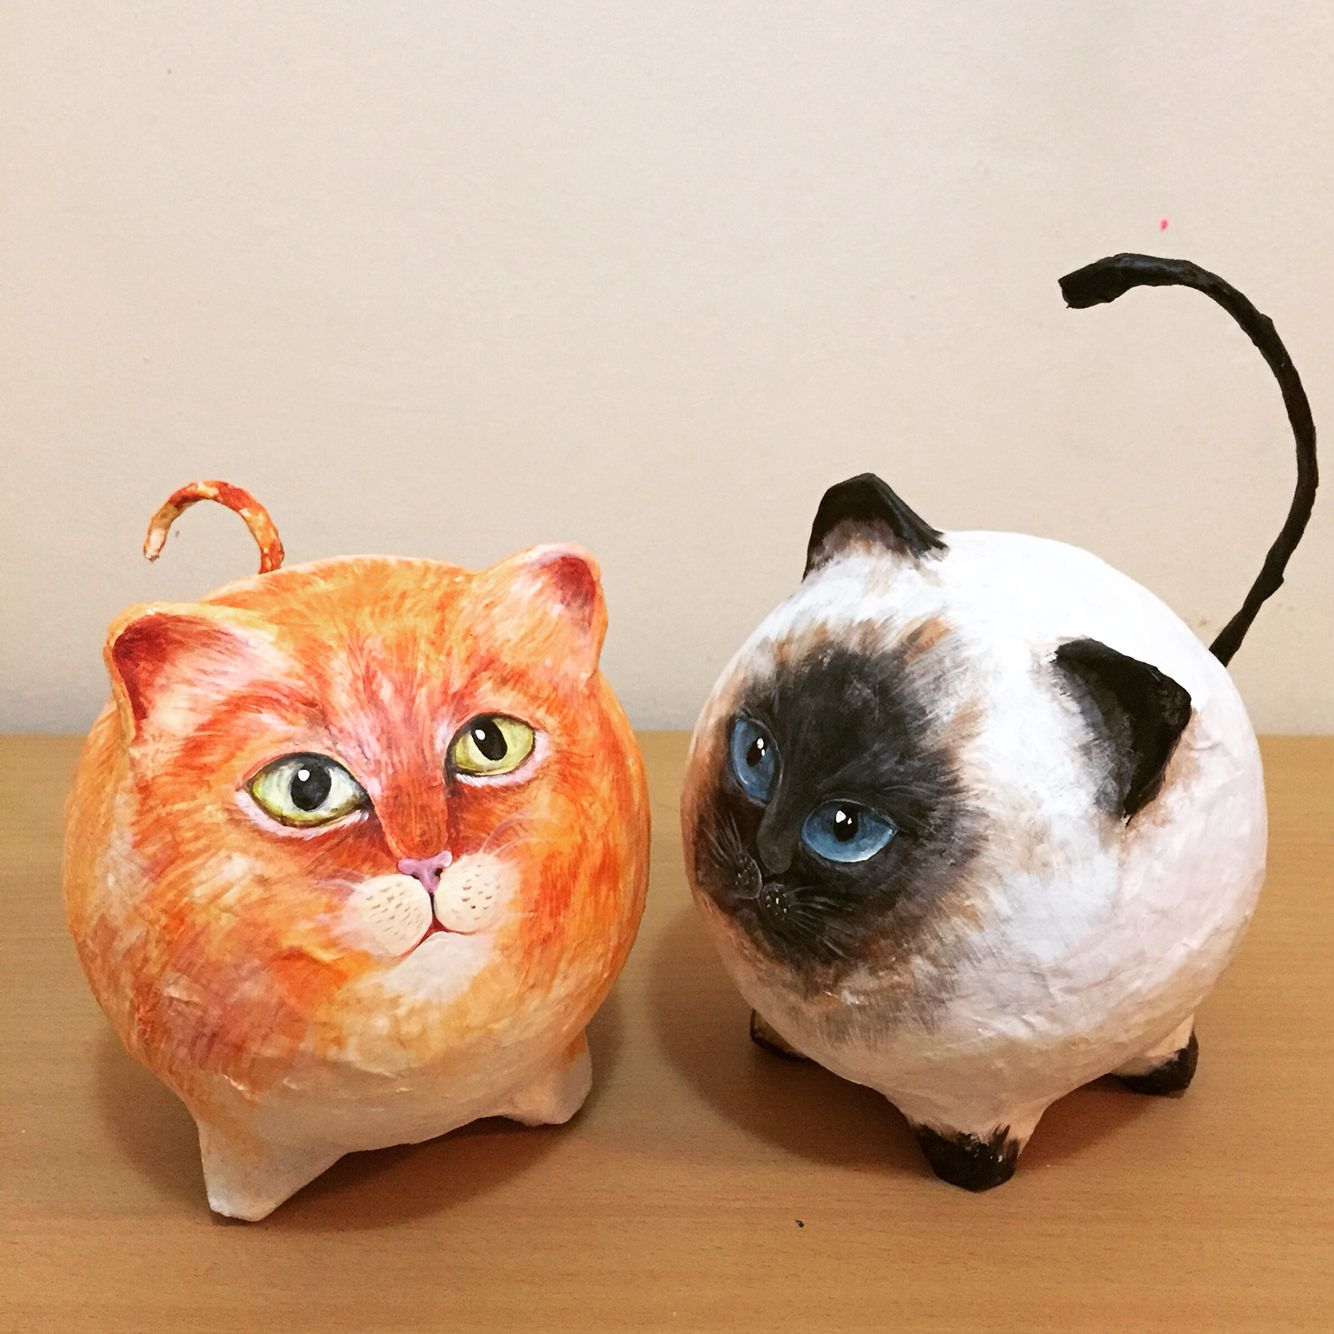 Paper mache ideas easter for Papier mache decorations